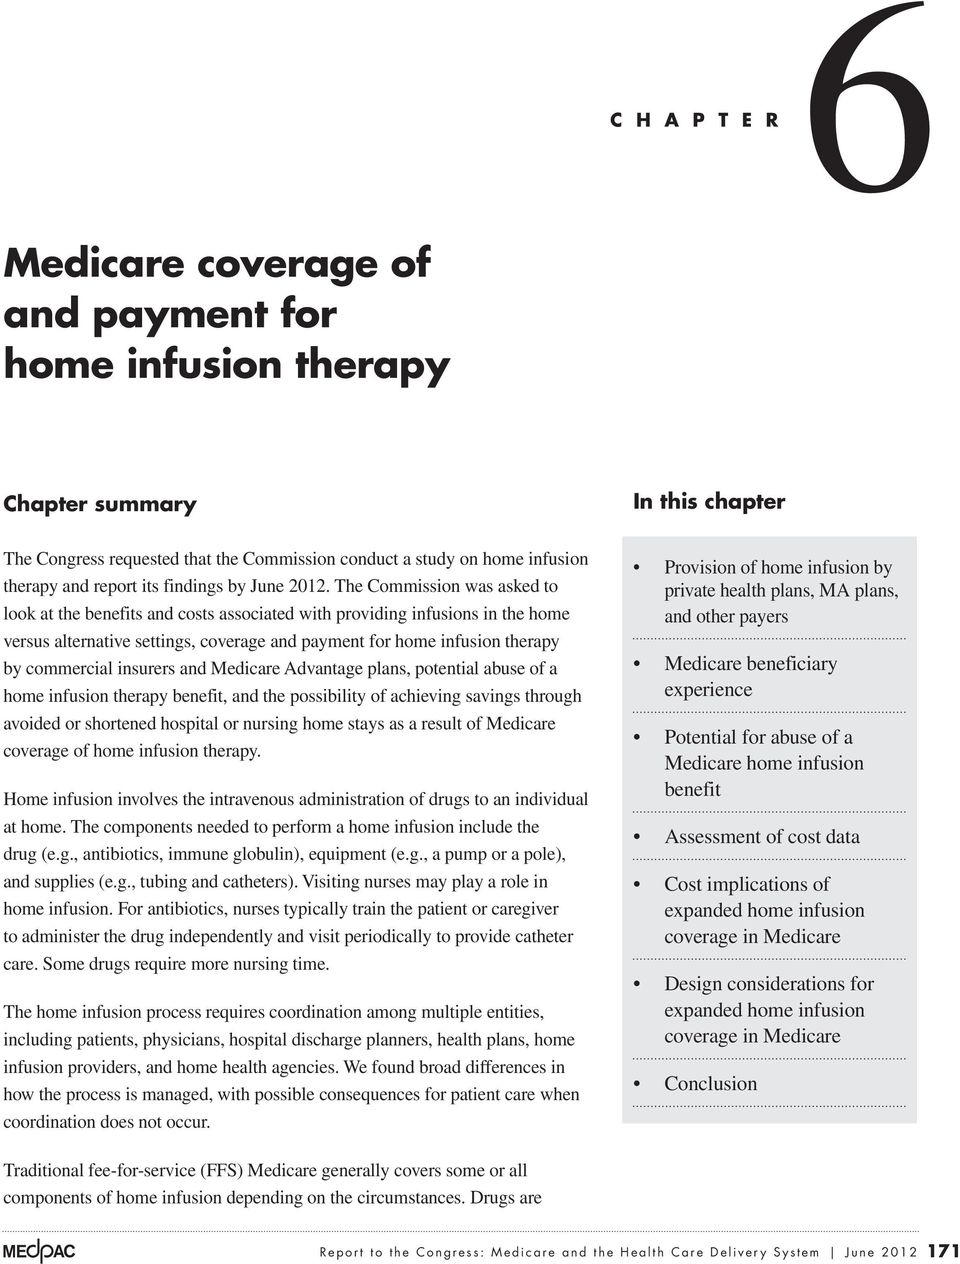 The Commission was asked to look at the benefits and costs associated with providing infusions in the home versus alternative settings, coverage and payment for home infusion therapy by commercial